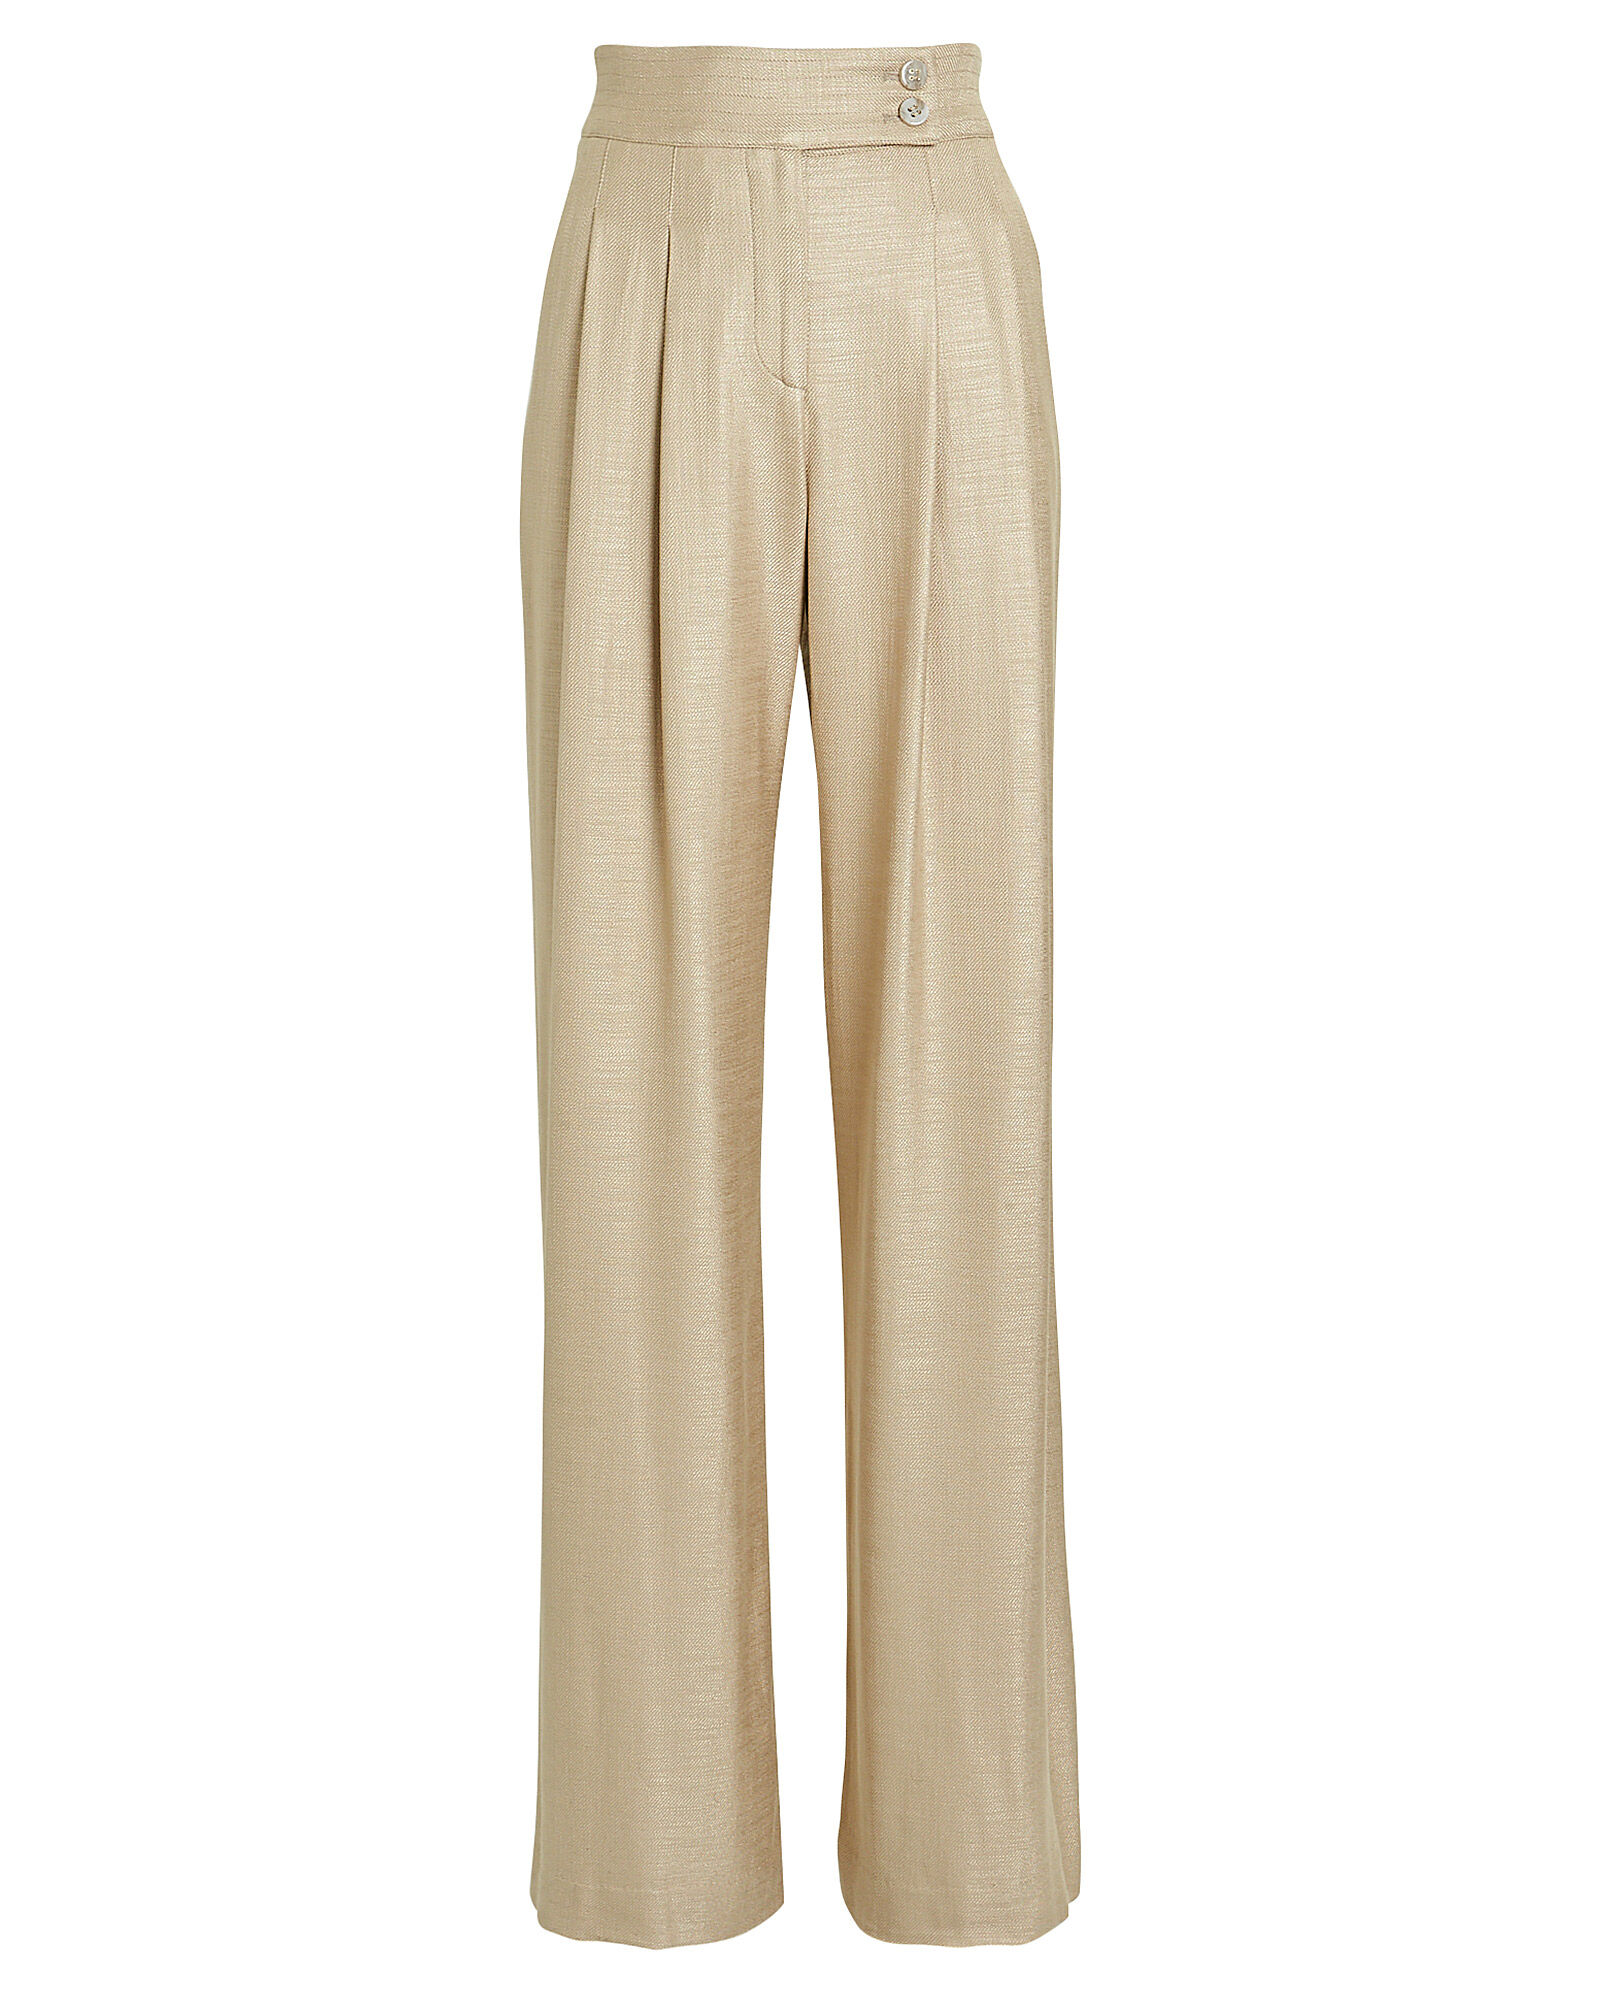 Elijah Wide-Leg Trousers, BEIGE, hi-res